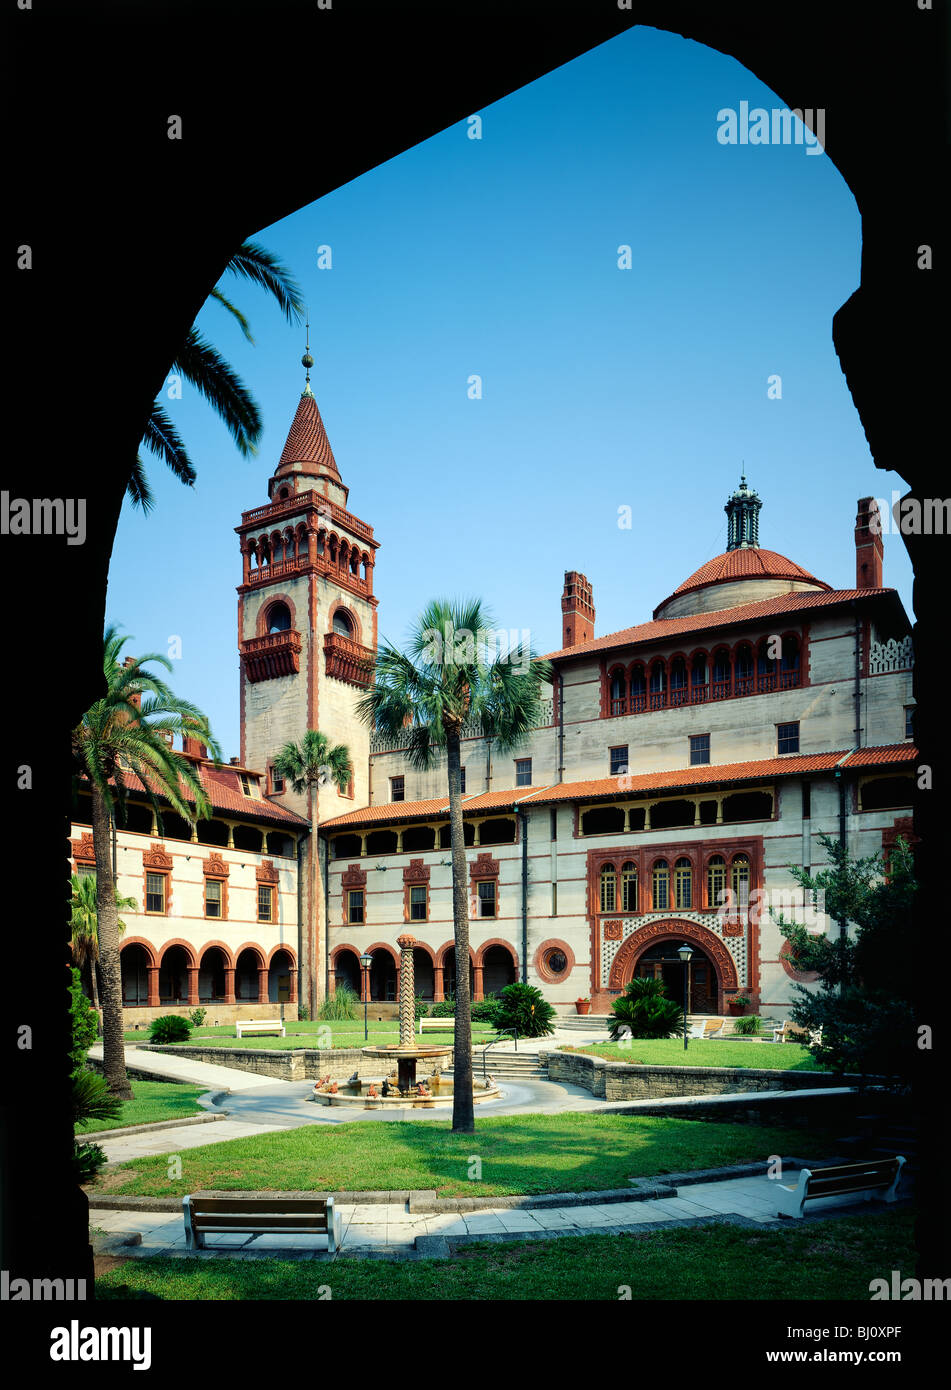 Building At Flagler College, 1888 Spanish Renaissance Style Architecture,  Originally Built As A Hotel, St. Augustine, Florida